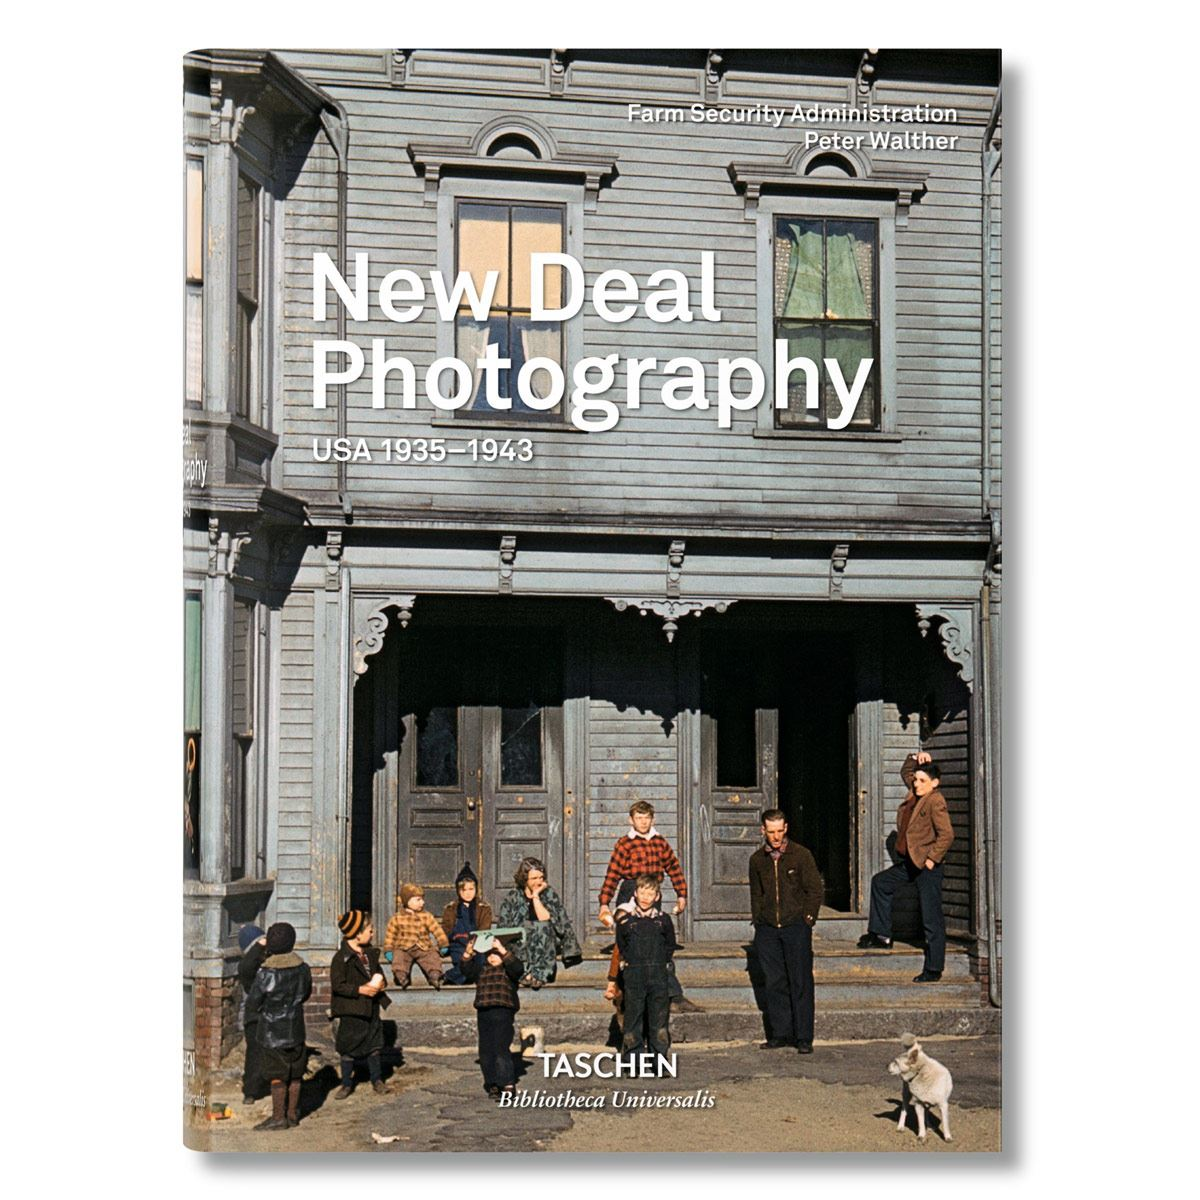 New Deal Photography USA 1935-1943